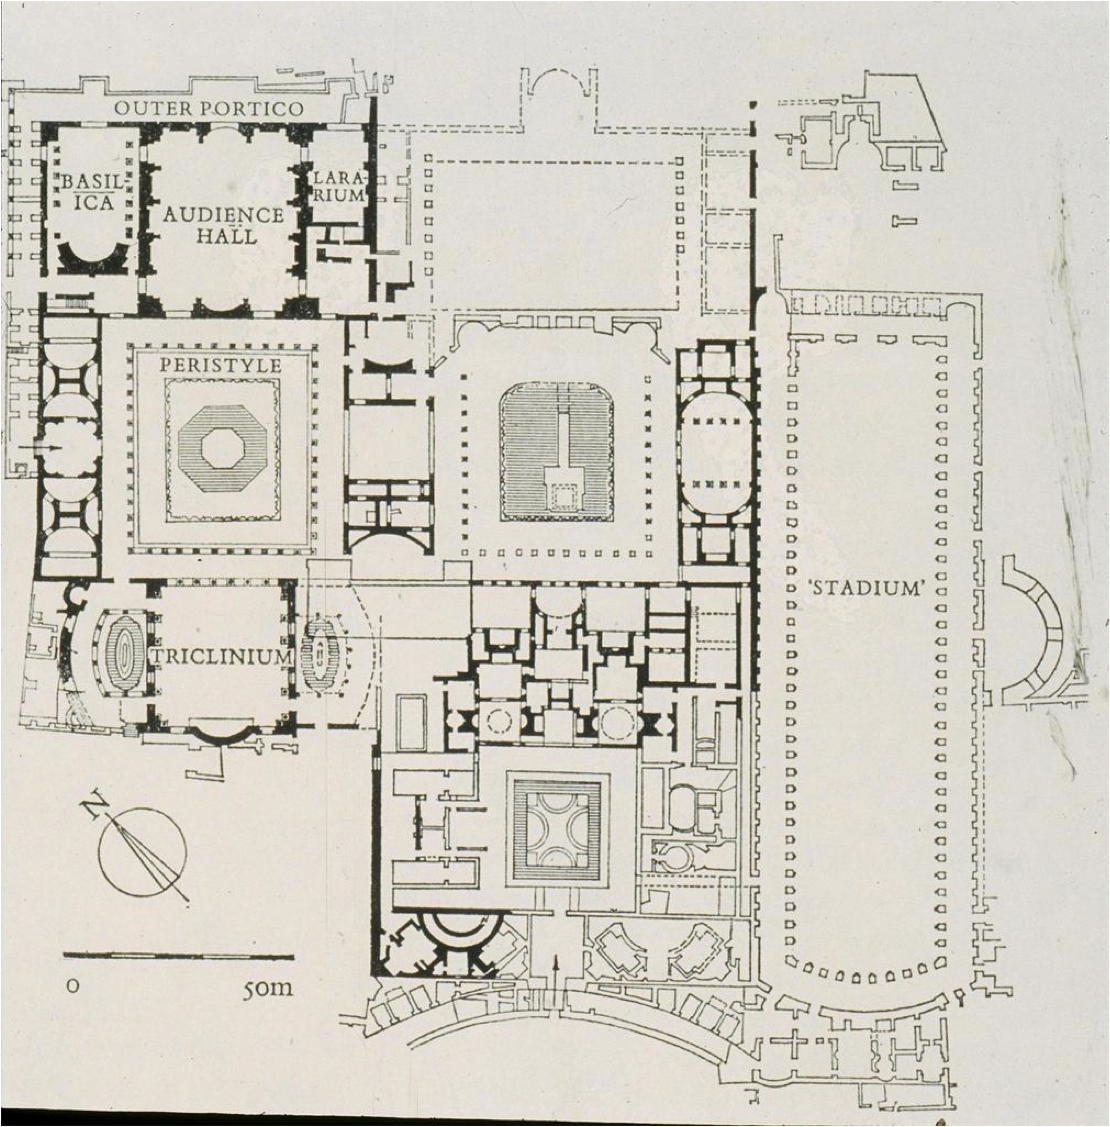 Plan flavian palace domus augustana rome history of for Palace plan